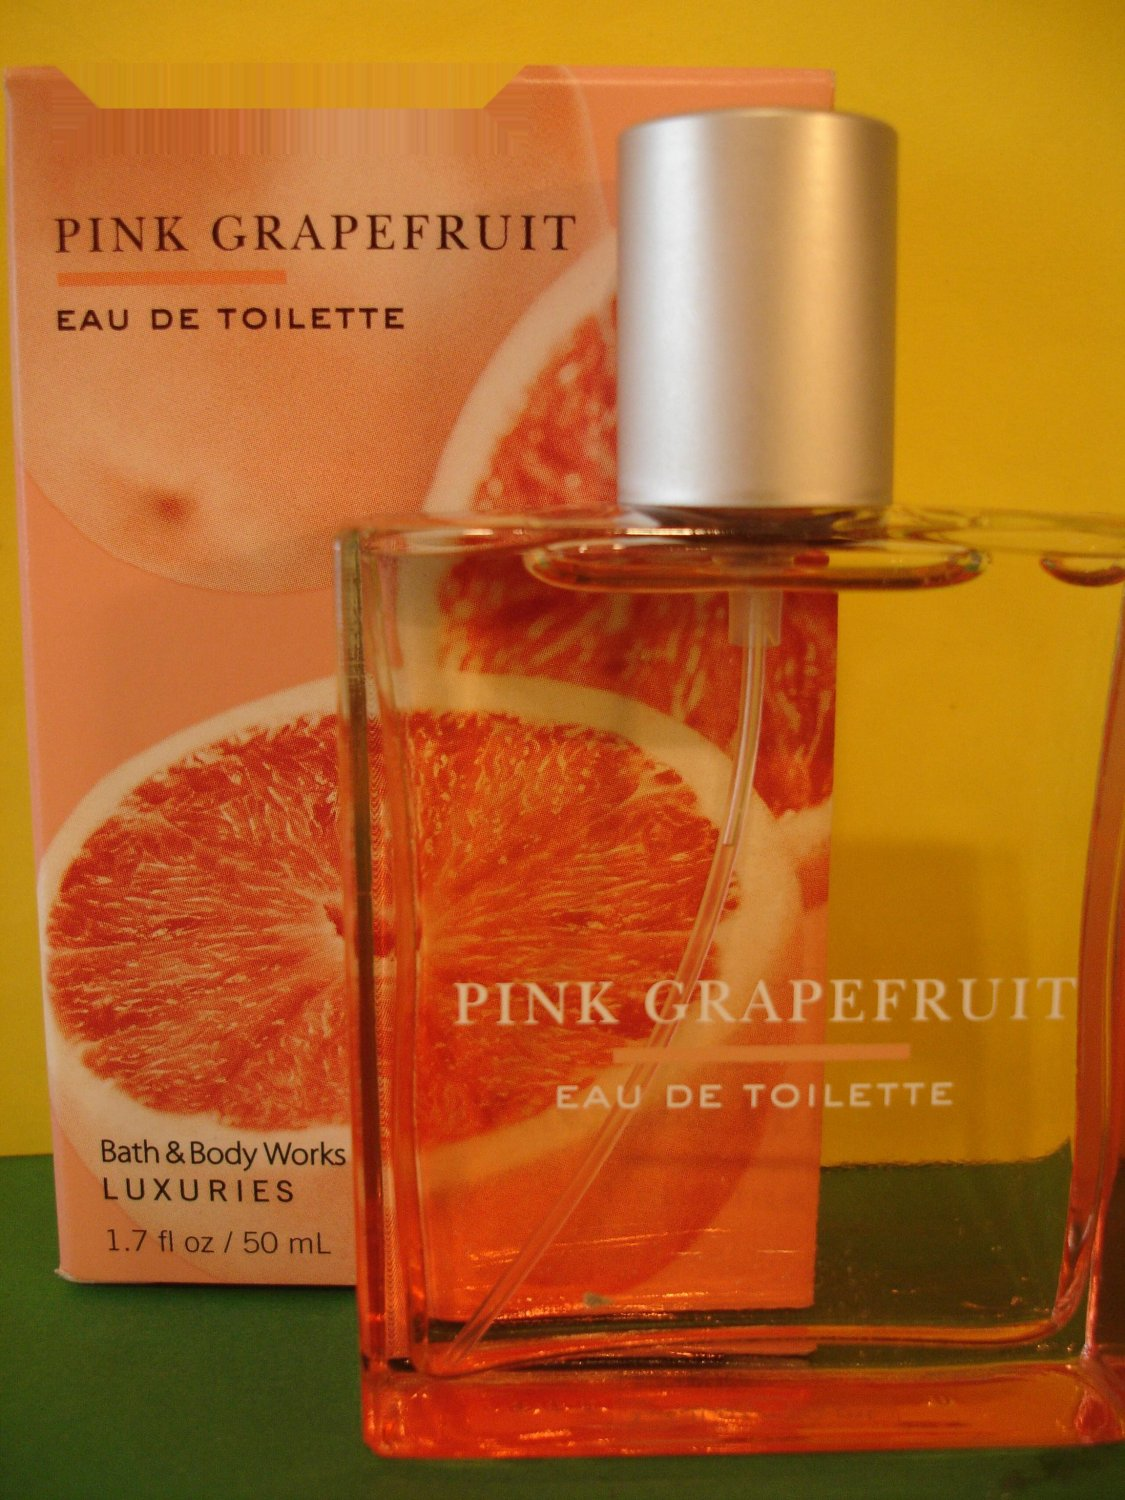 Body Mist Bath And Body Works Pink Grapefruit Perfume Edt Full Size